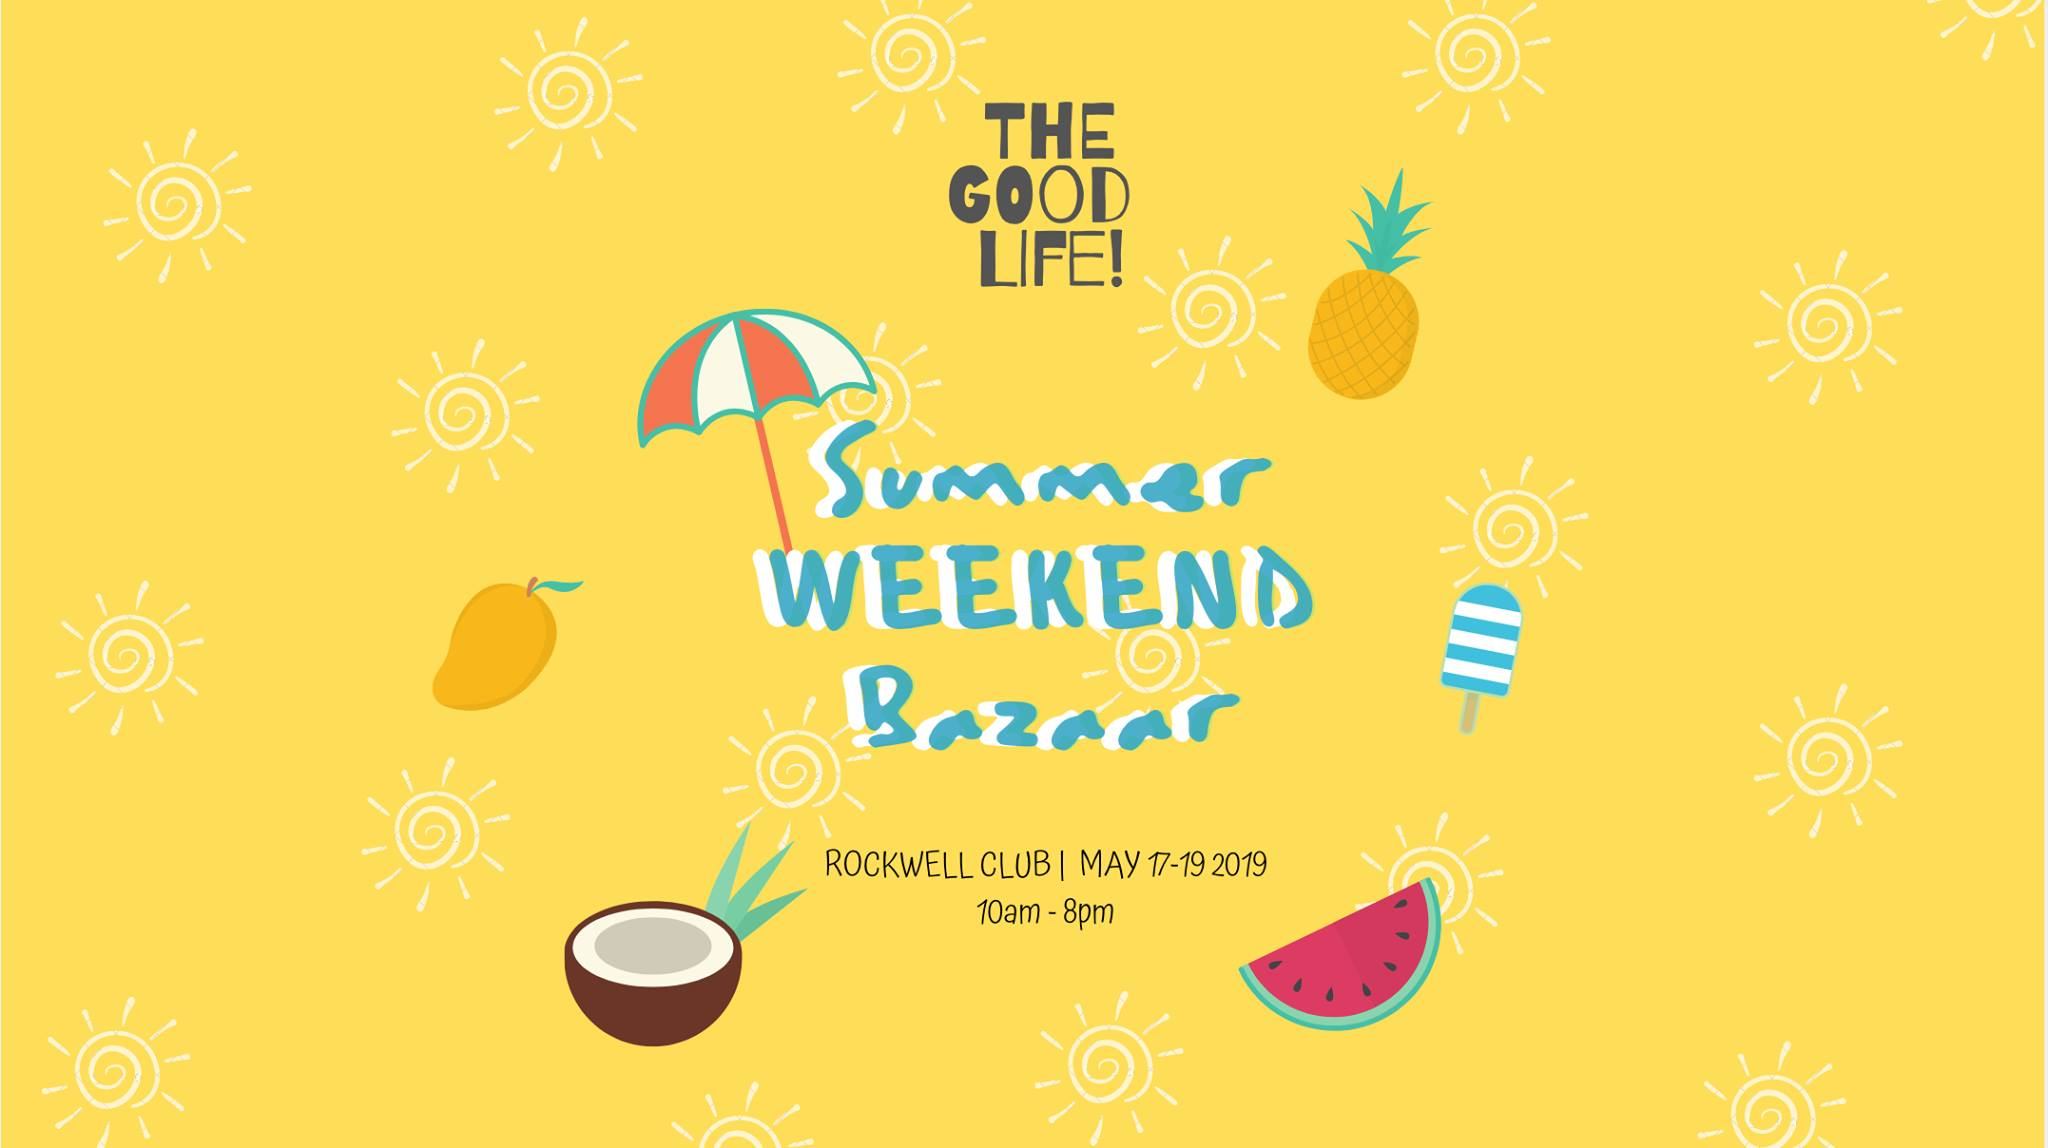 ROCKWELL CLUB'S SUMMER WEEKEND BAZAAR